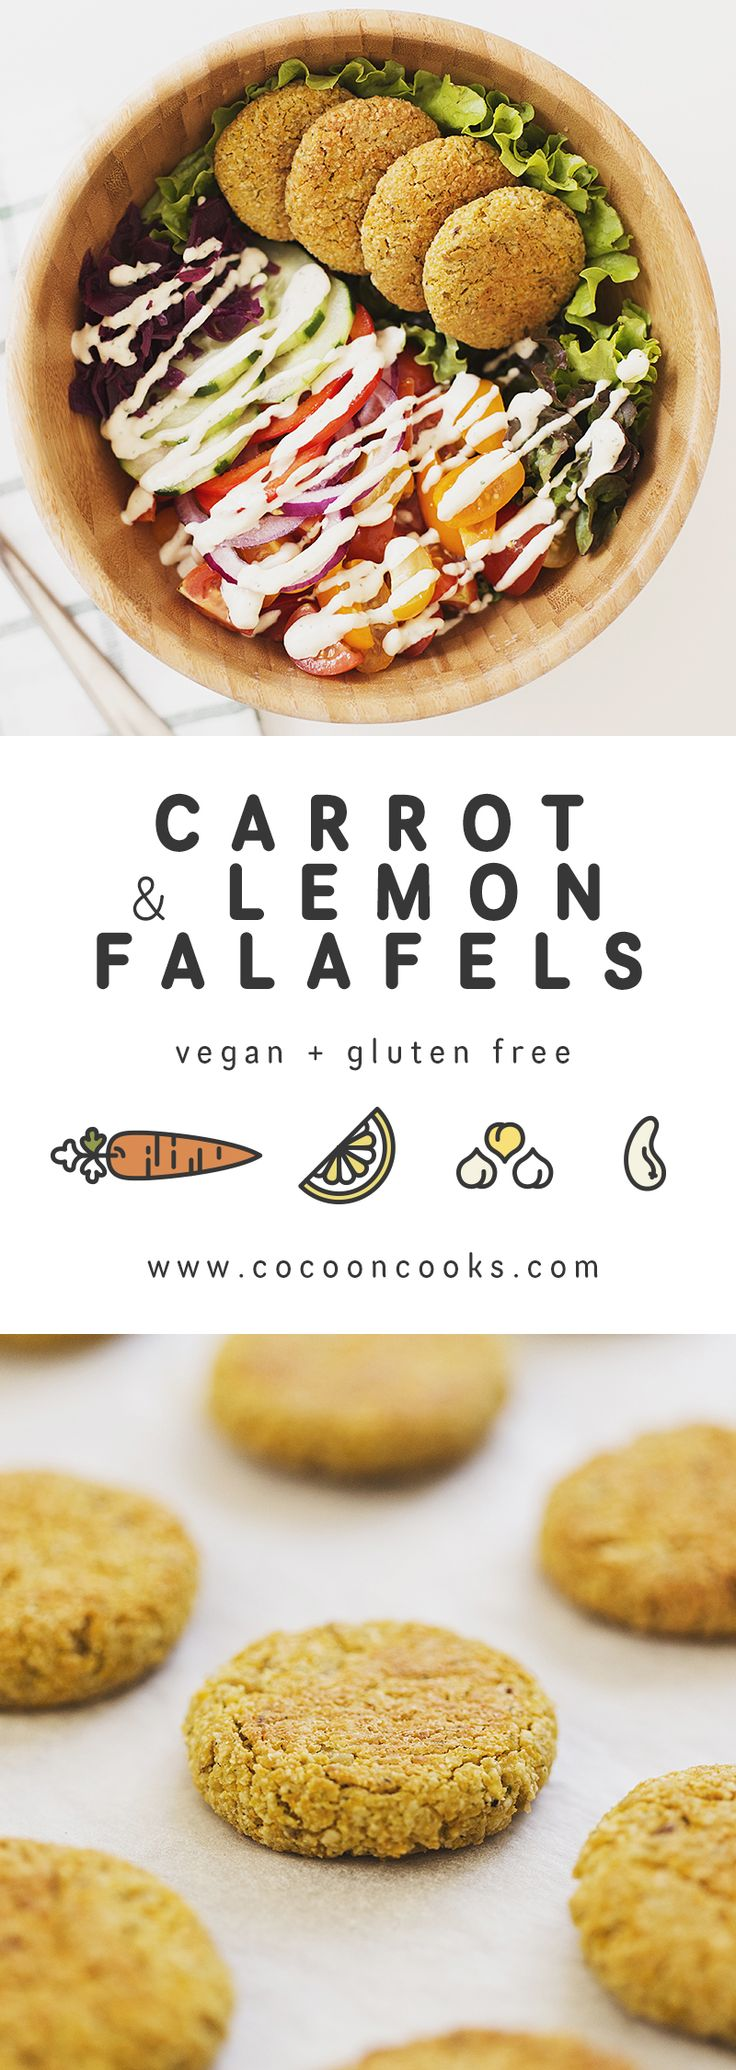 These baked falafels are 100% plantbased, crispy and delicious! Served in a big salad bowl drizzled with a Lemon & Tahini Dressing.